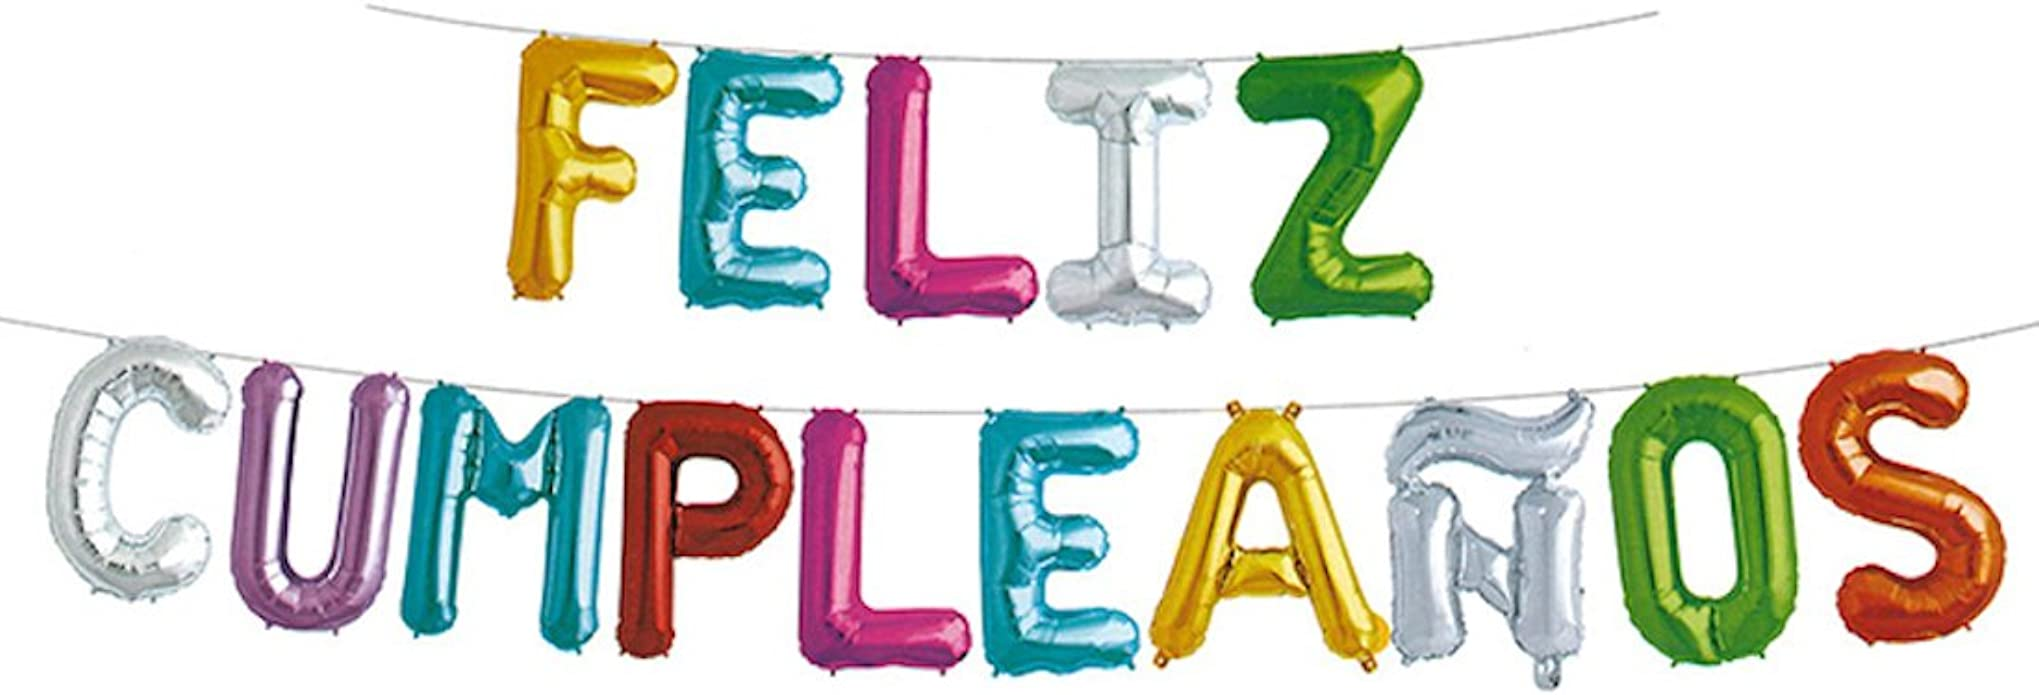 GSC Moda Feliz Cumpleanos Happy Birthday Balloons Banner, 16 inches Foil Balloons Letters for Birthday Party Decoration